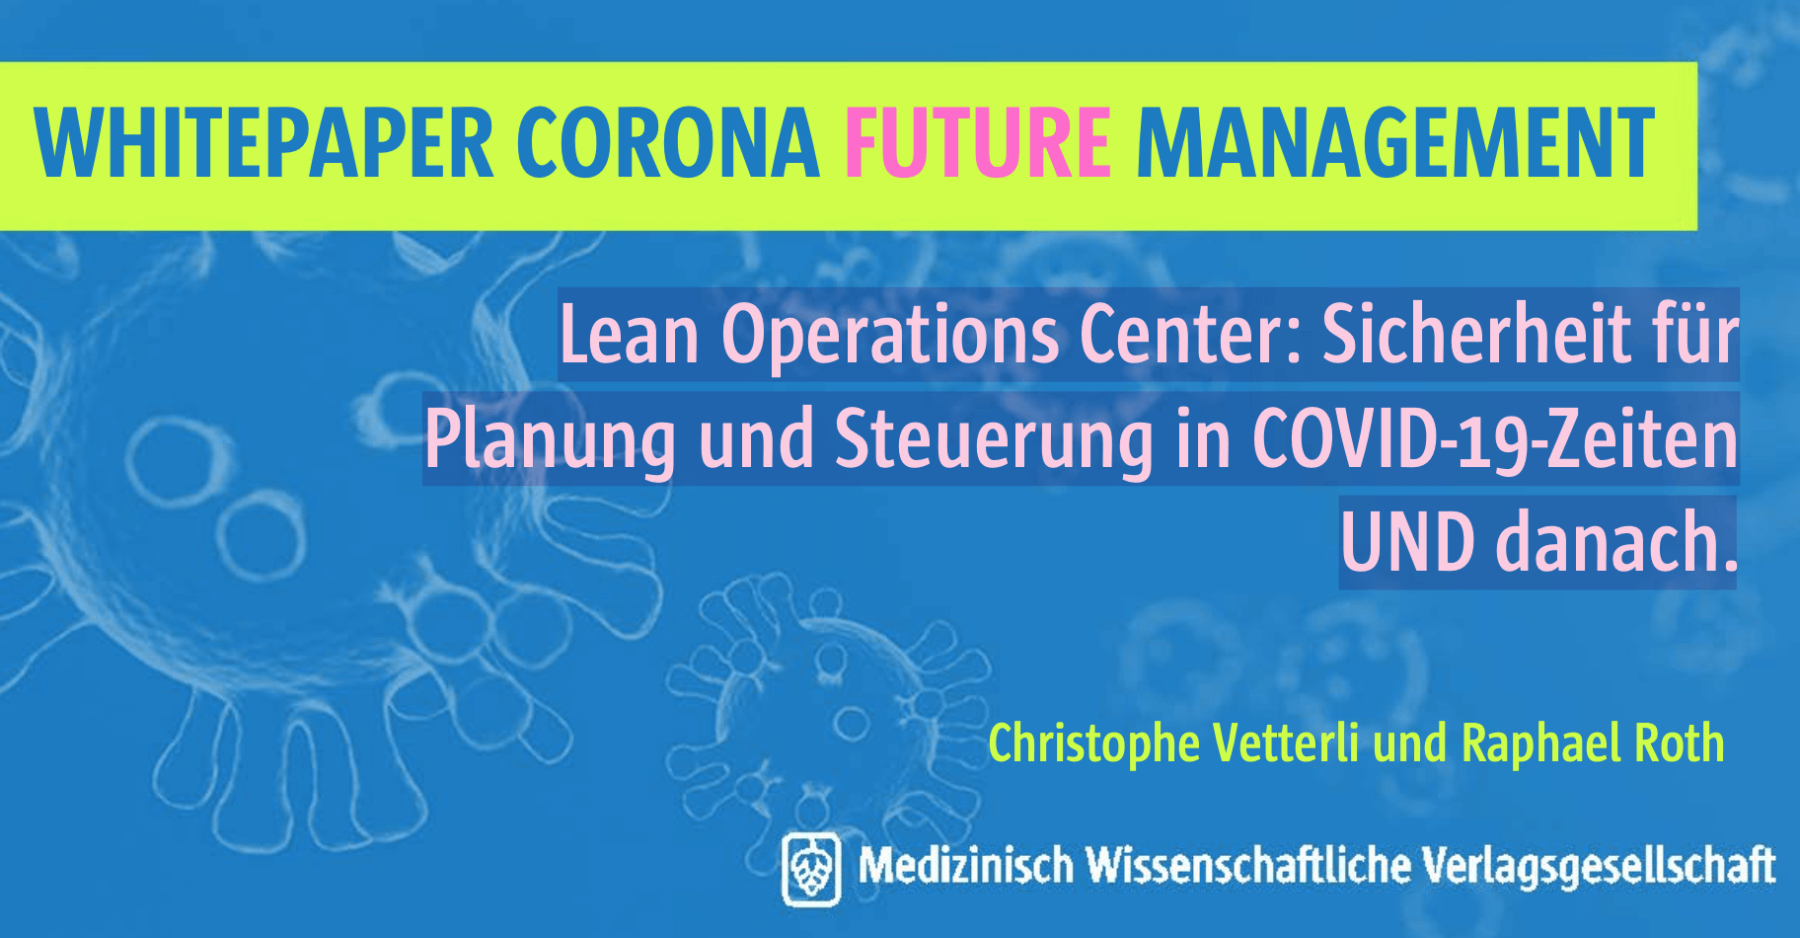 Lean Operations Center: Security For Planning And Control During Times Of COVID-19 And Beyond